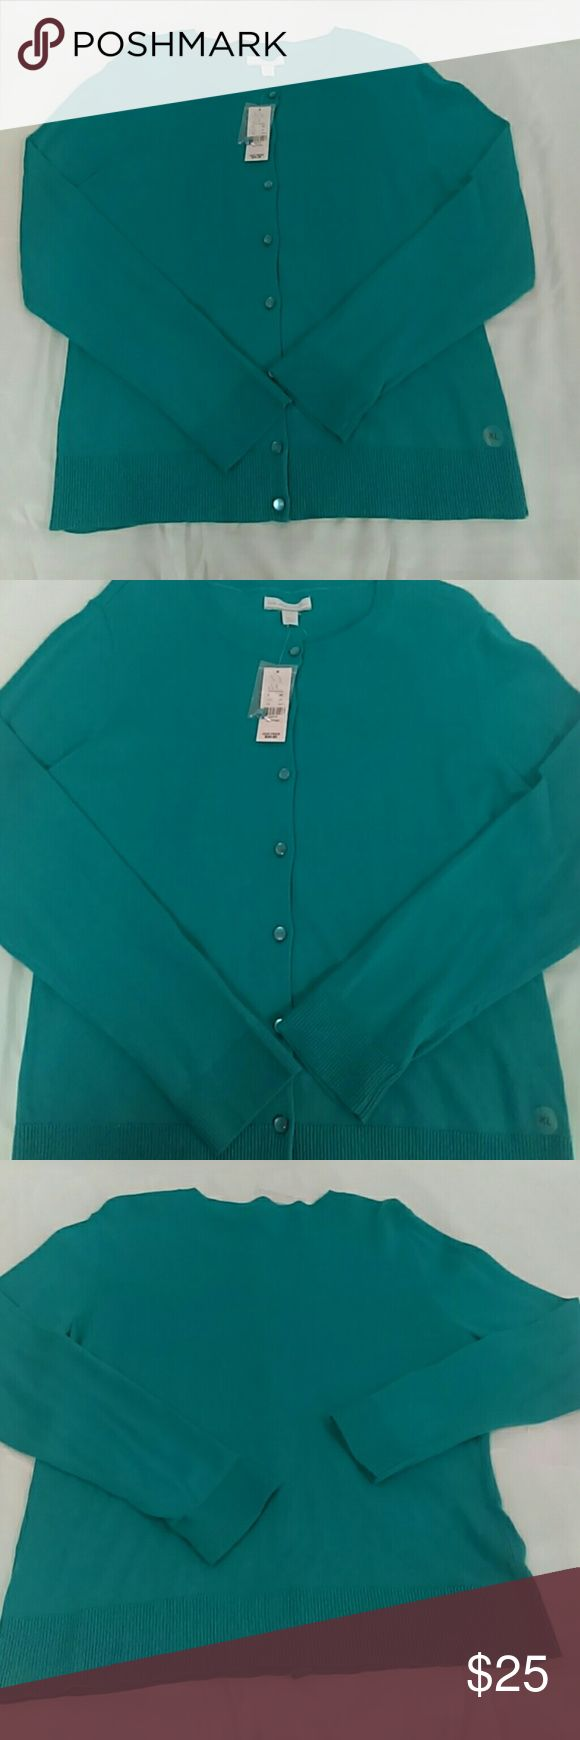 "NWT NY&C Turquoise Cardigan Sz. XL Stay a little warmer at the office or complete you look with this cardigan. Bust measures 20"" New York & Company Sweaters Cardigans"